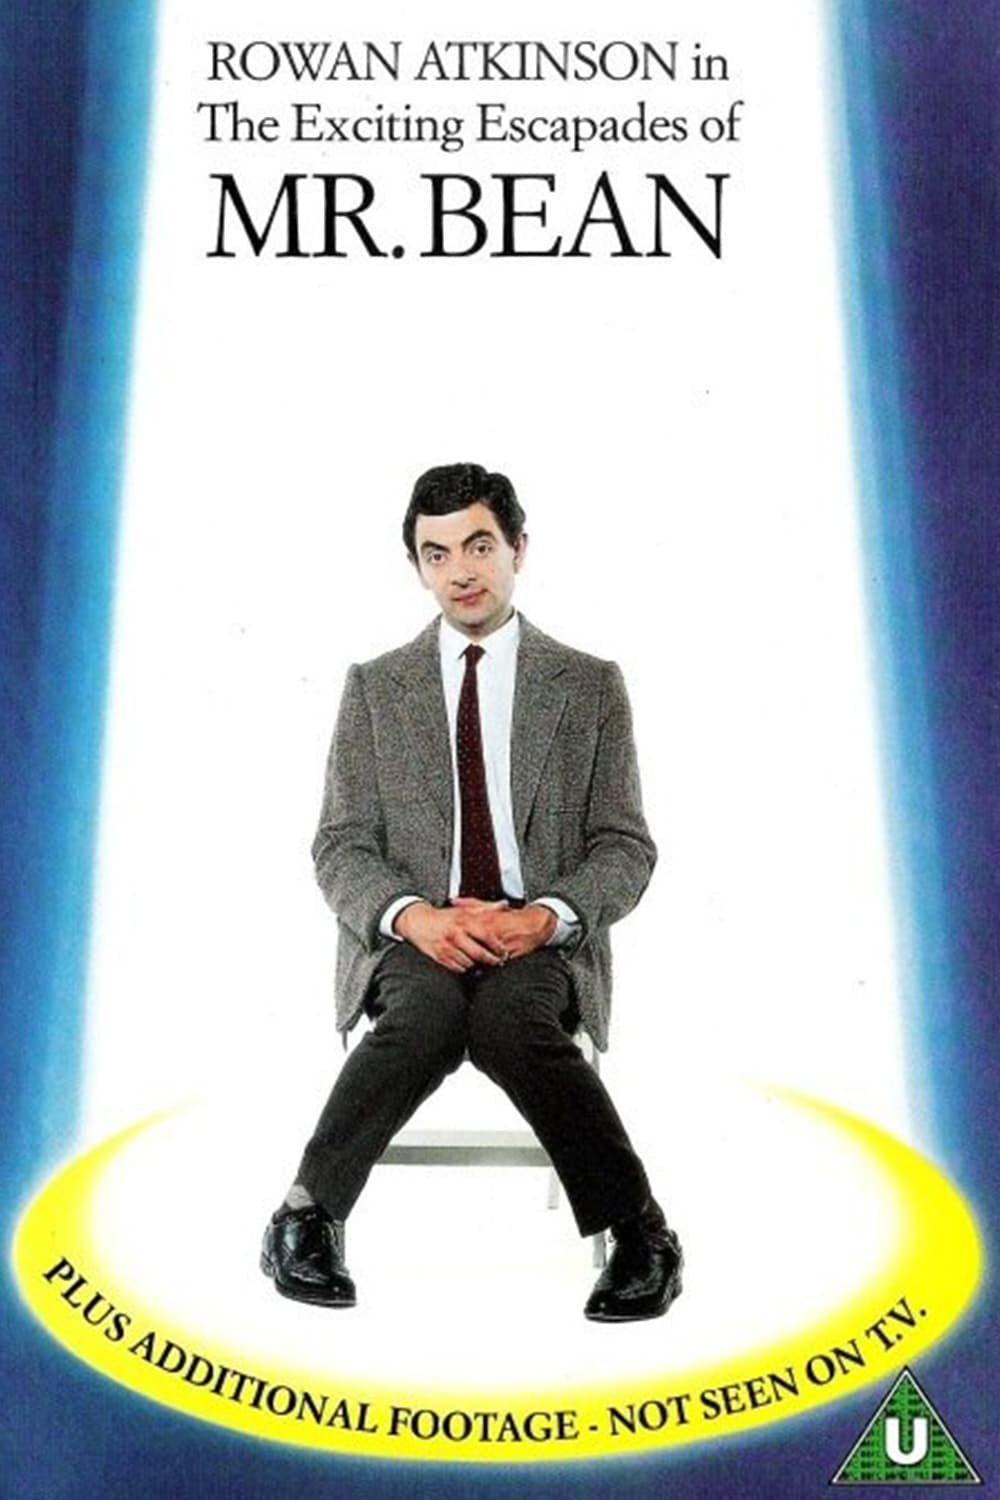 The Exciting Escapades of Mr. Bean (1991)